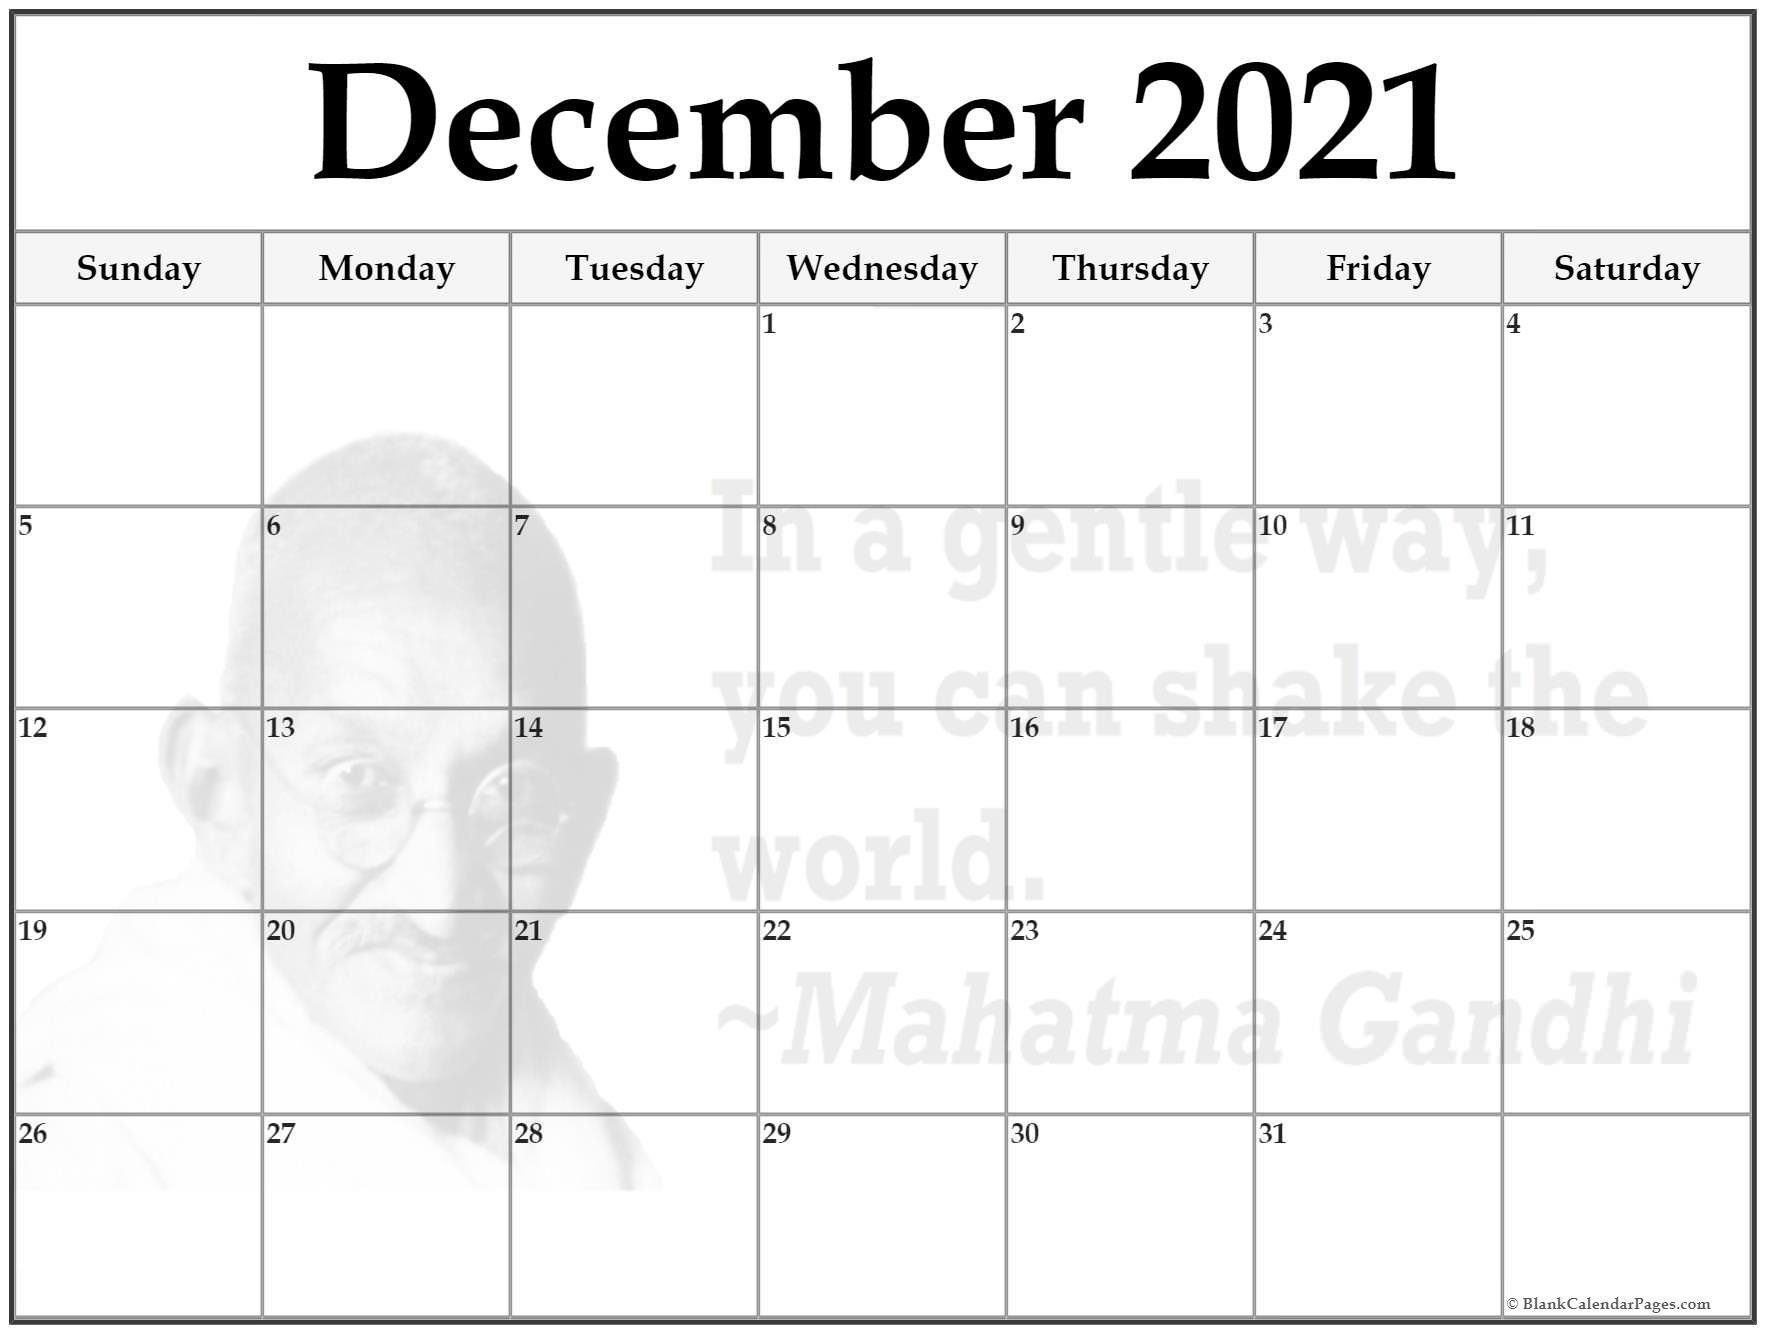 December 2021 quote calendar . In a gentle way, you can shake the world. ~Mahatma Gandhi